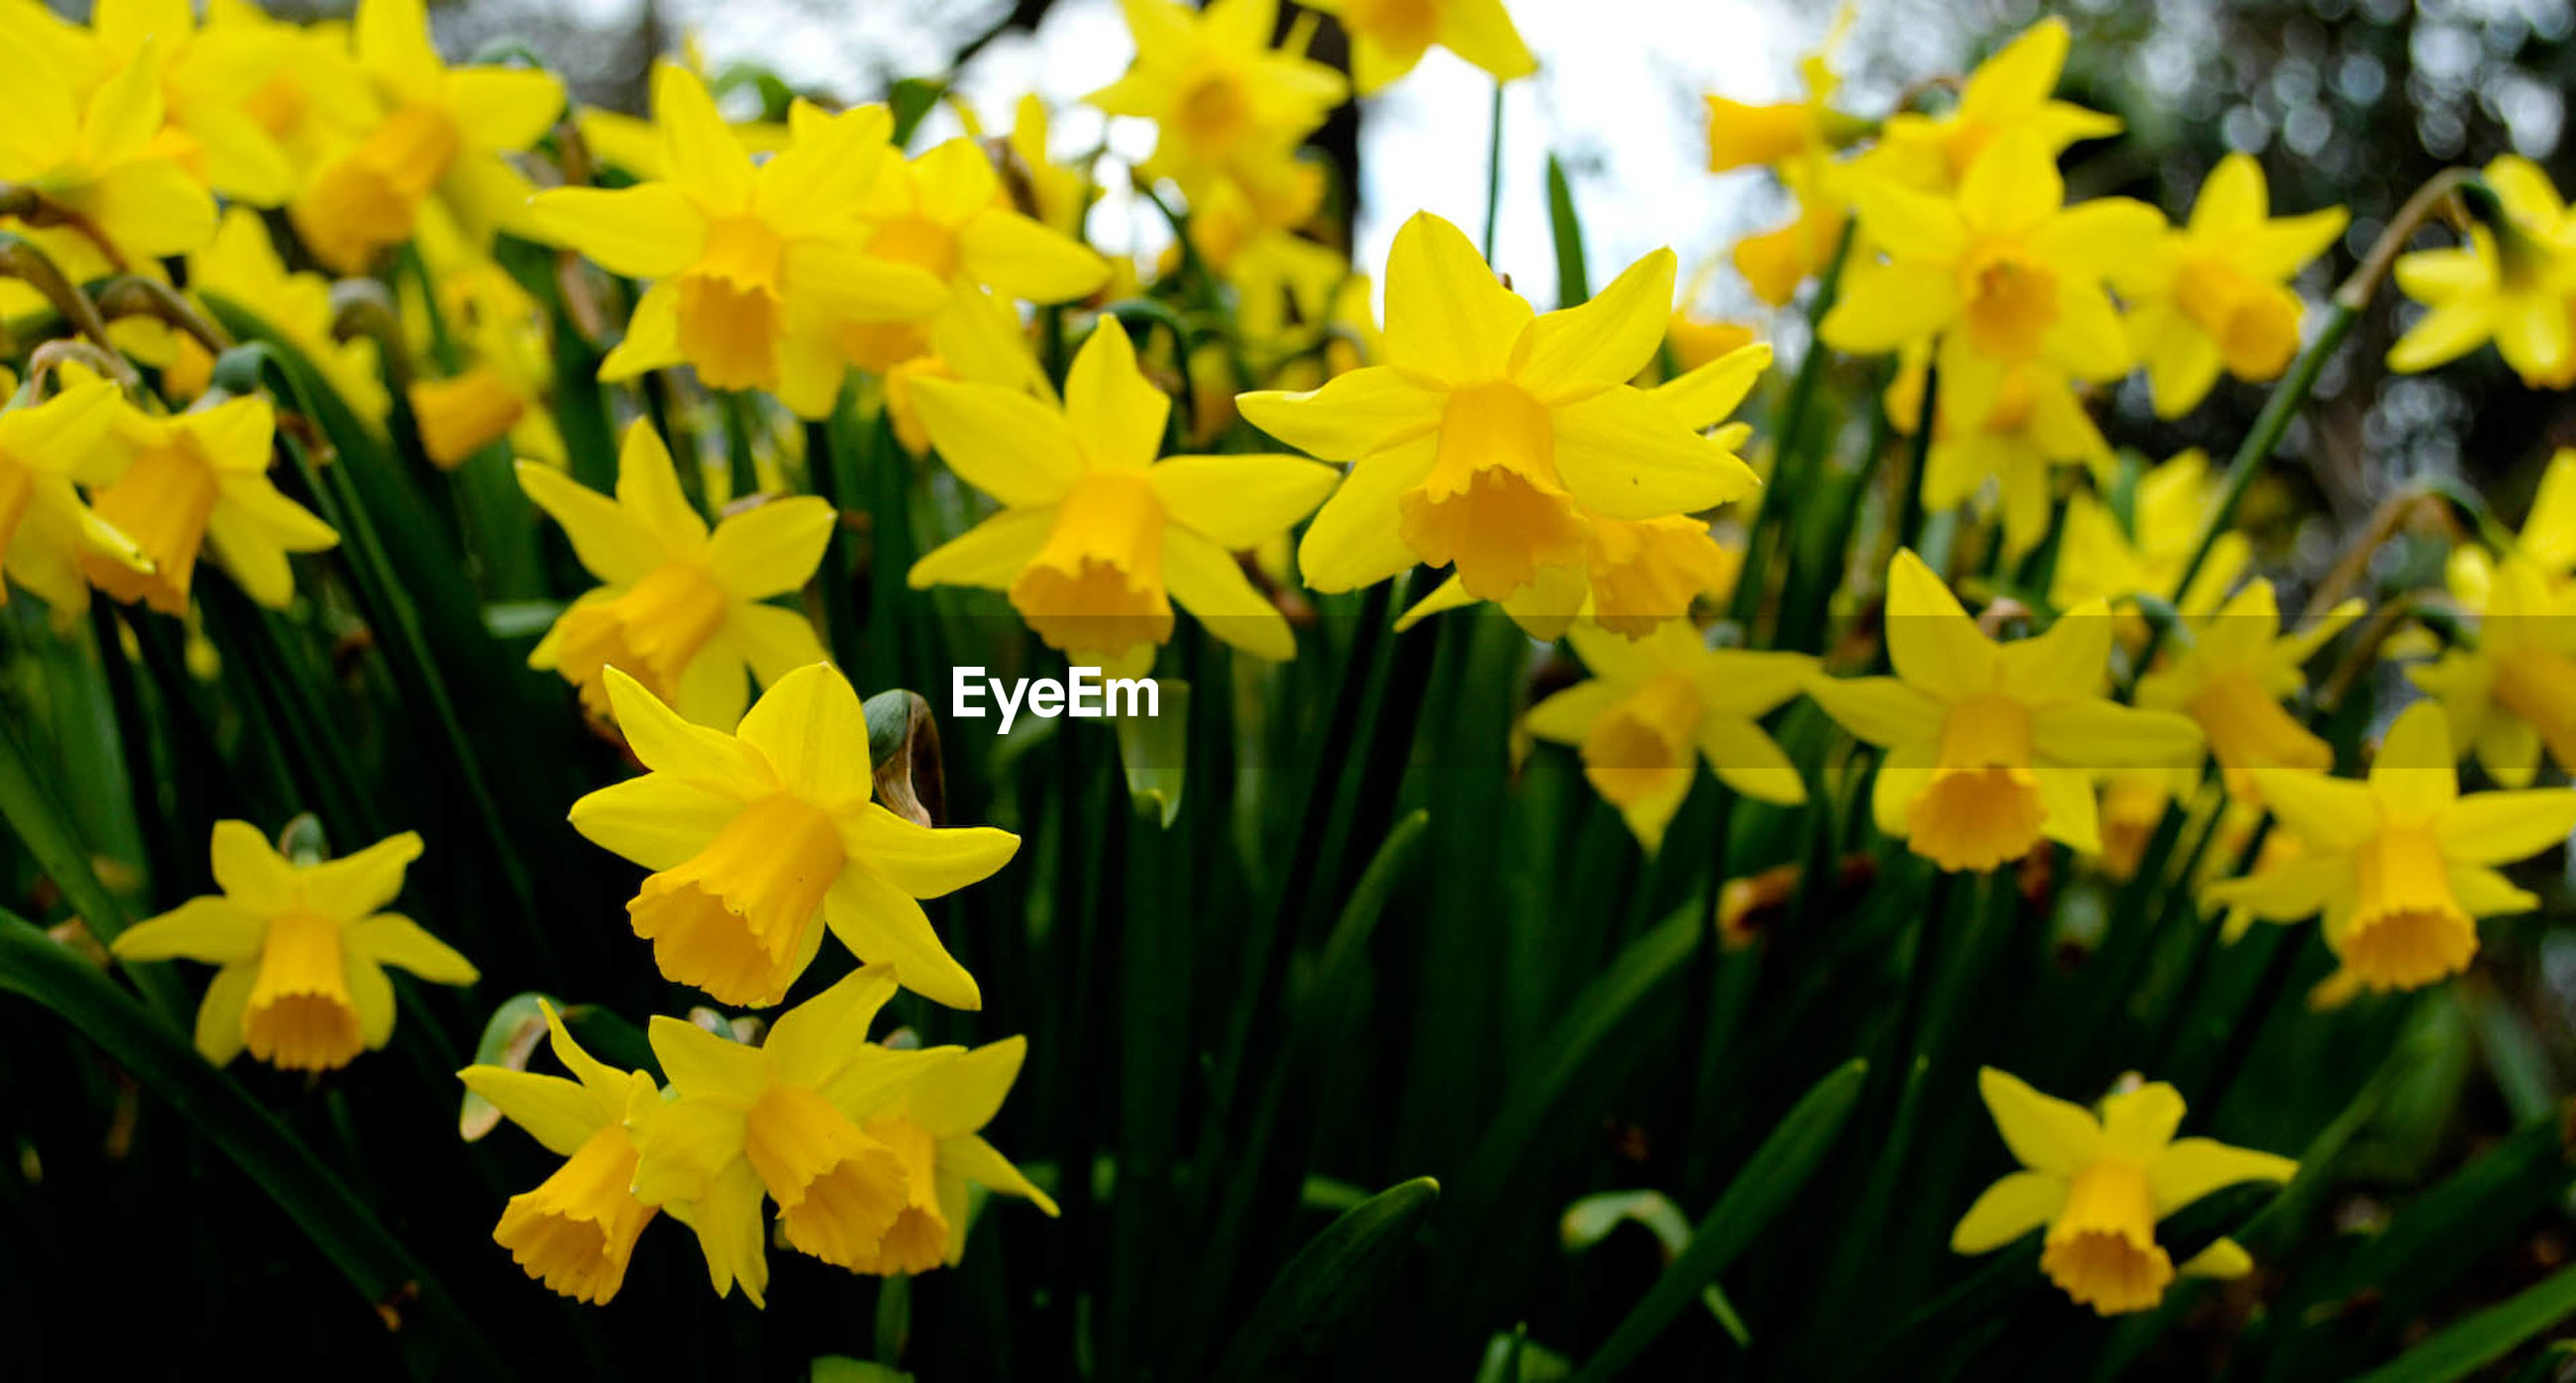 Blossoming daffodils in the spring